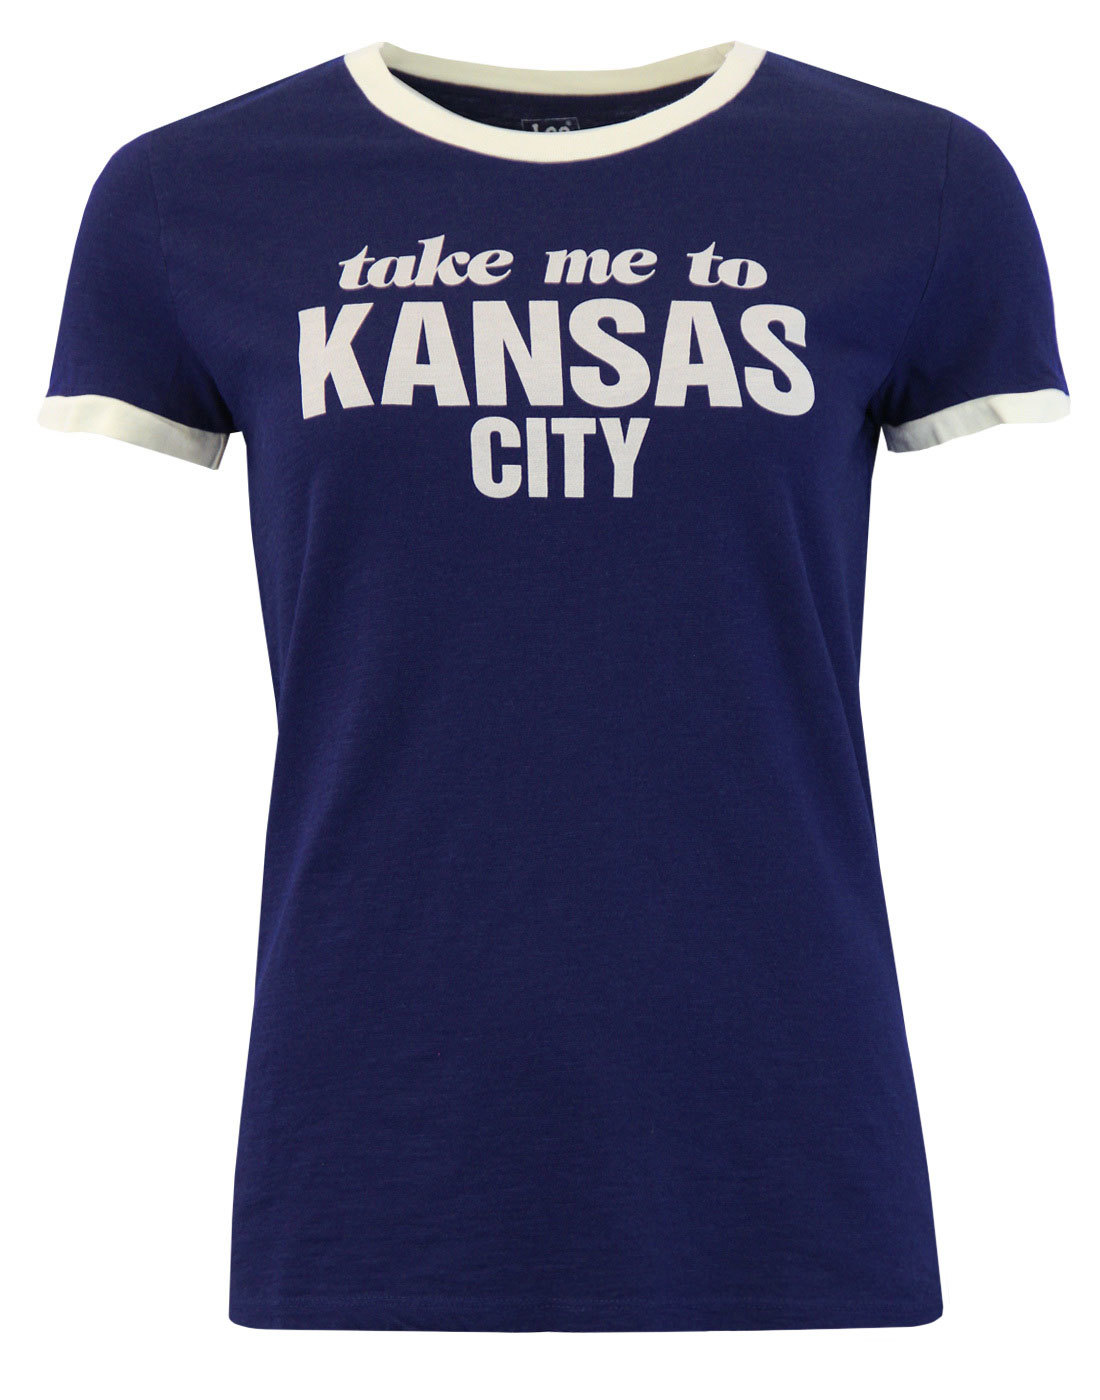 Kansas City LEE Retro 70s Vintage Ringer Tee BLUE